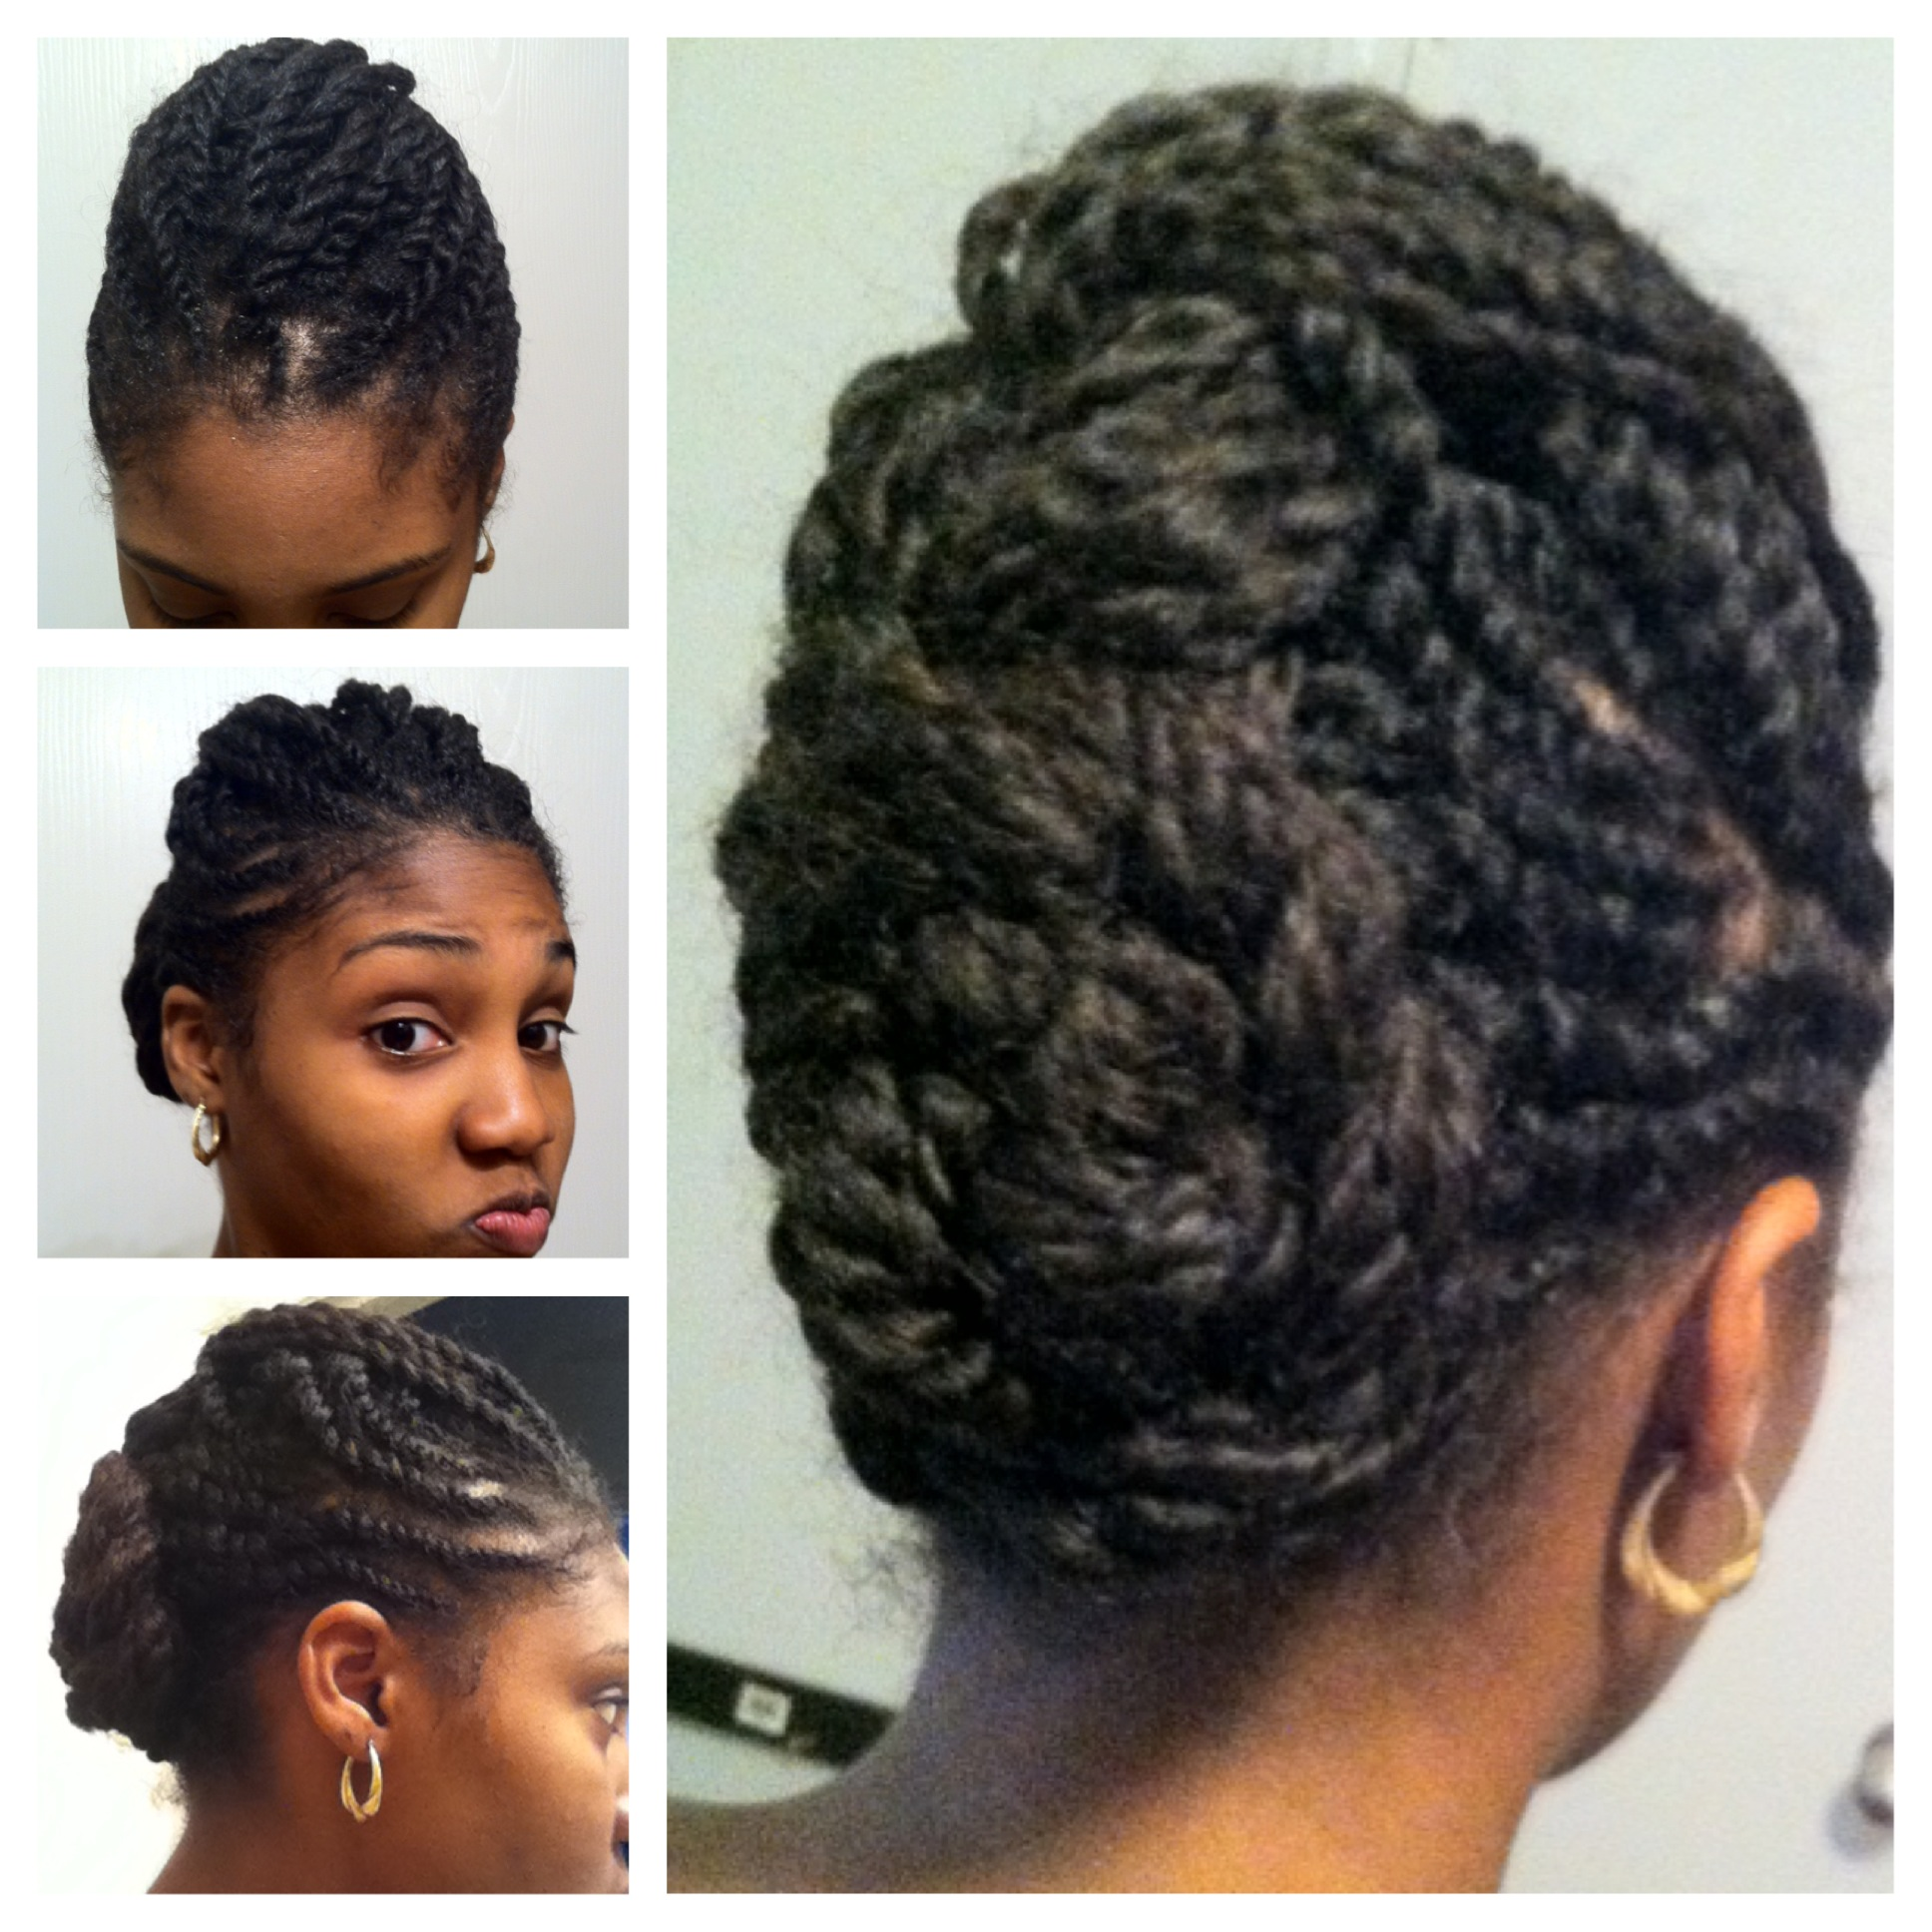 dirty blonde hairstyles : Natural Hair Styles] Still Protective Styling Natural Hair Rules!!!